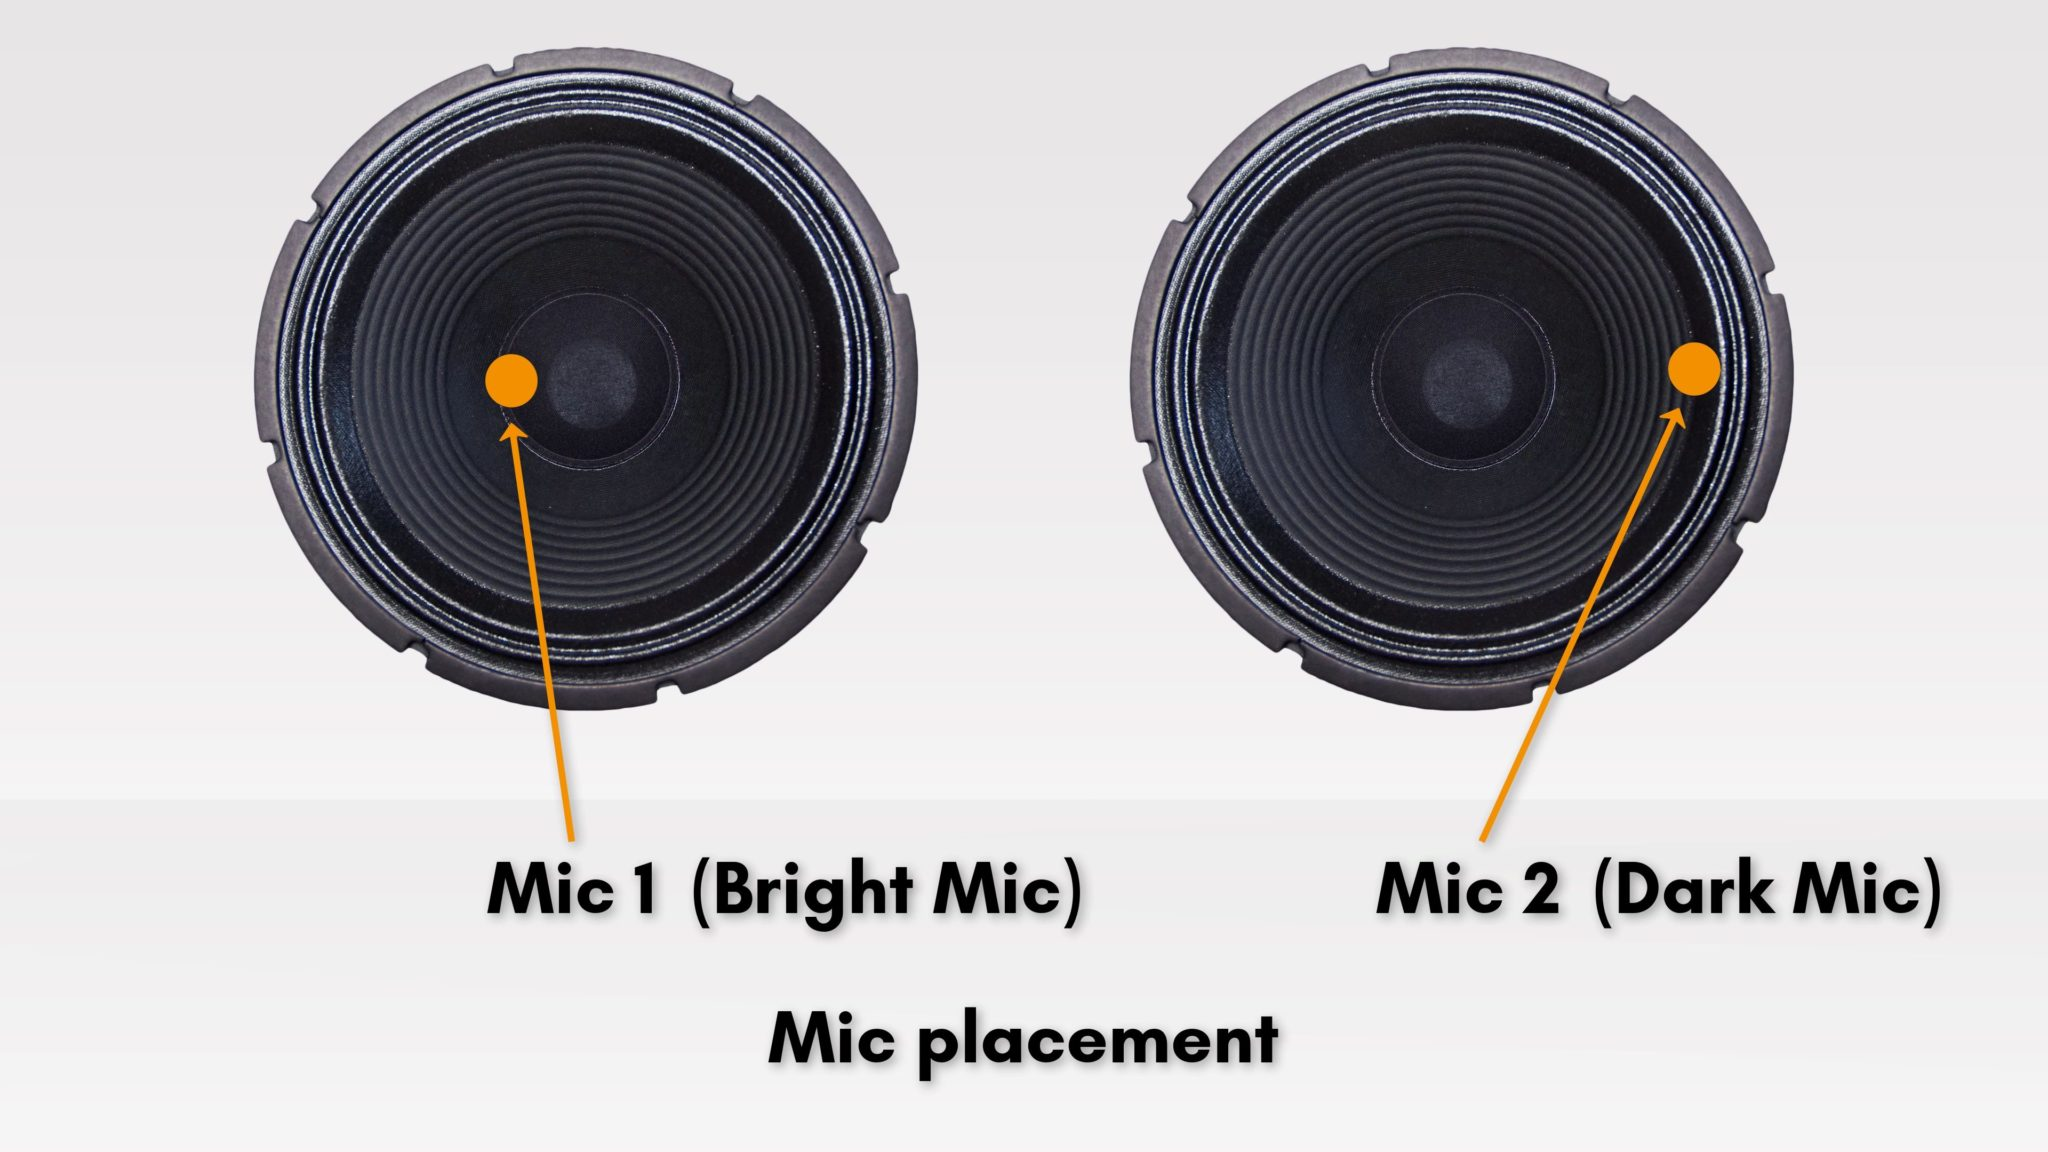 Illustration of different mic placements on a guitar speaker. Cone: bright, Edge: dark